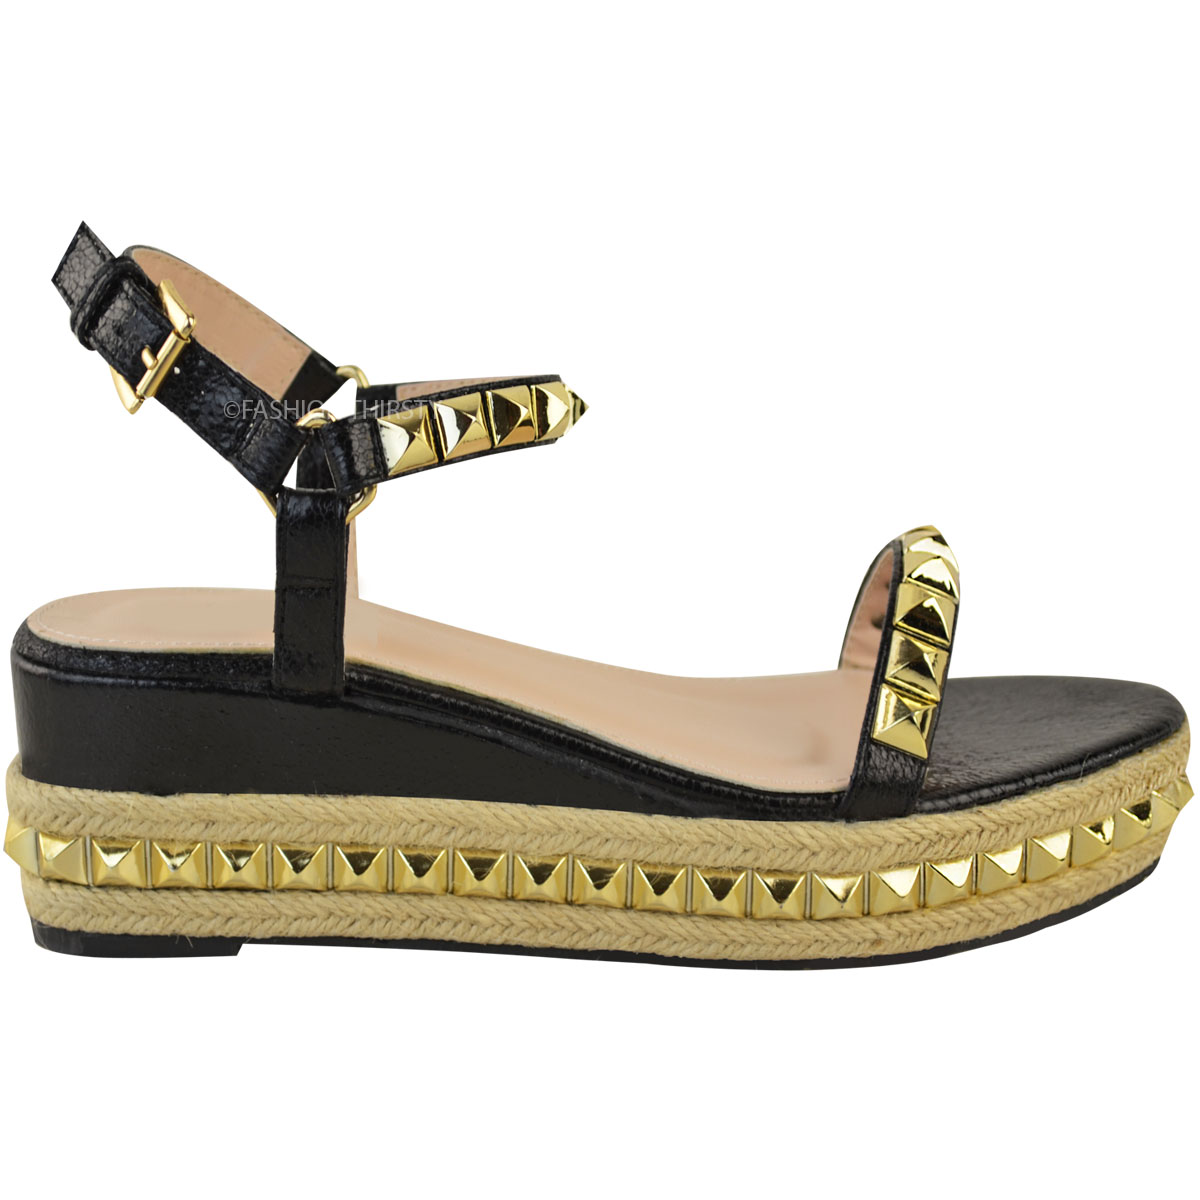 Ladies-Womens-Studded-Low-Wedge-Espadrille-Sandals-Platform-Rose-Gold-Shoes-Size thumbnail 14